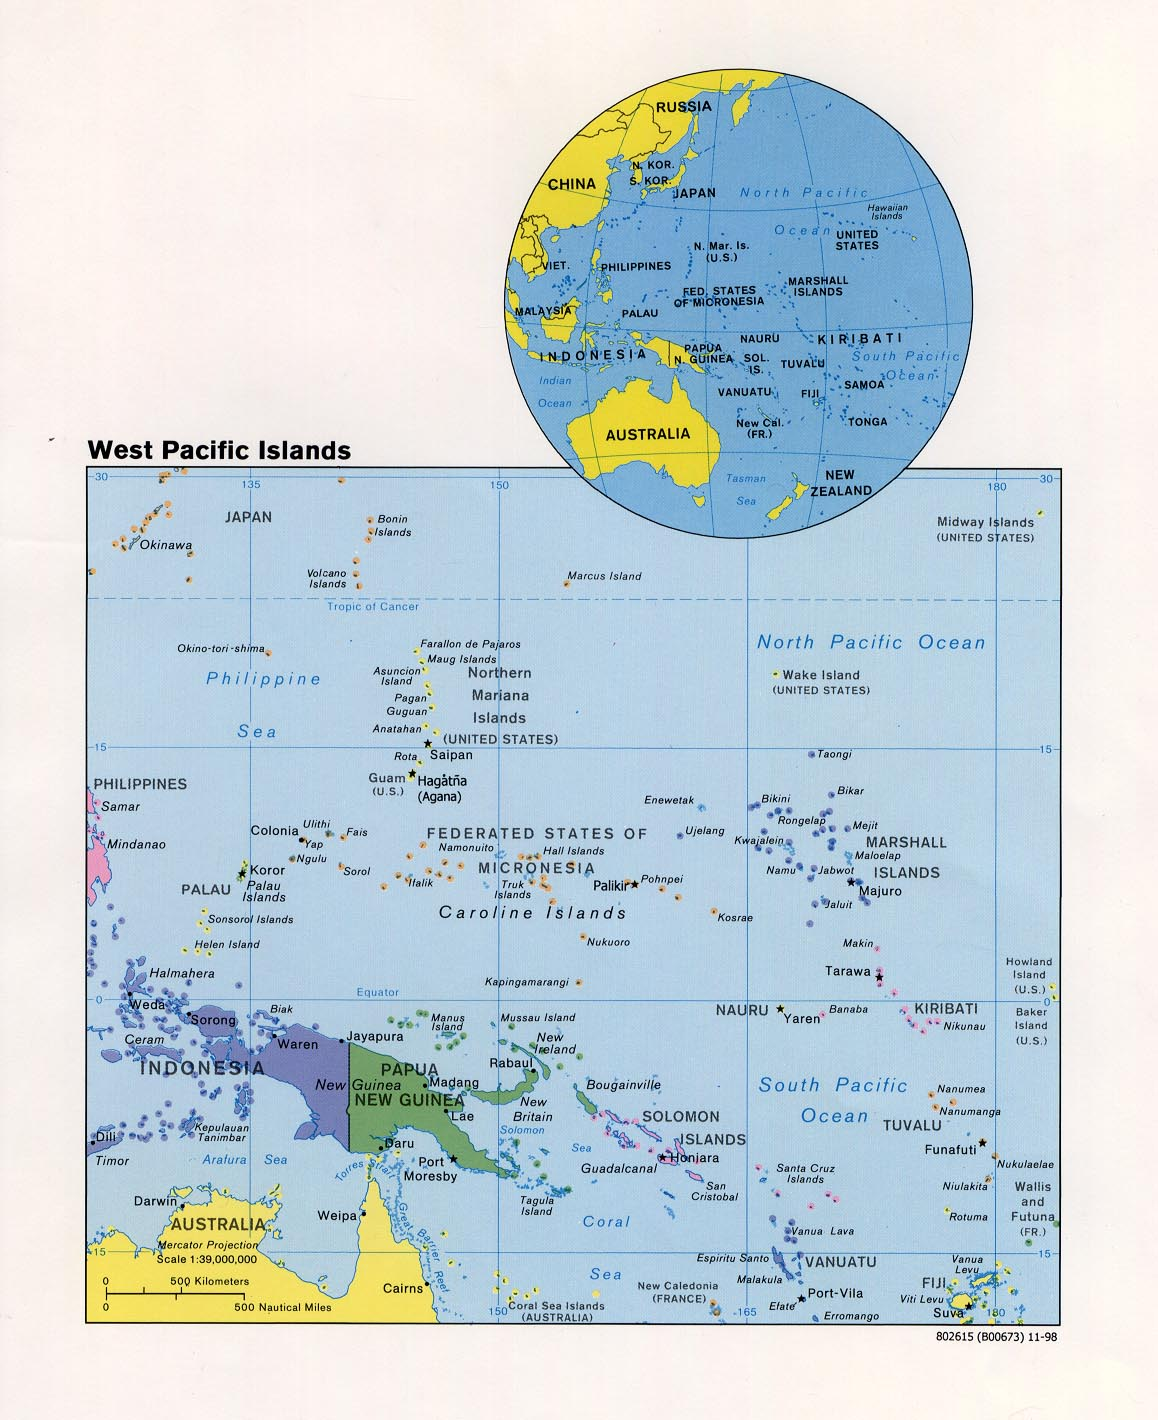 west pacific islands map 1998 with Pacific Ocean3 on M6 2 Earthquake Hit Balleny Islands Region Antarctica also Pacific Ocean3 in addition United states moreover Eq pacific west 20 coast additionally Southern Vancouver Island.